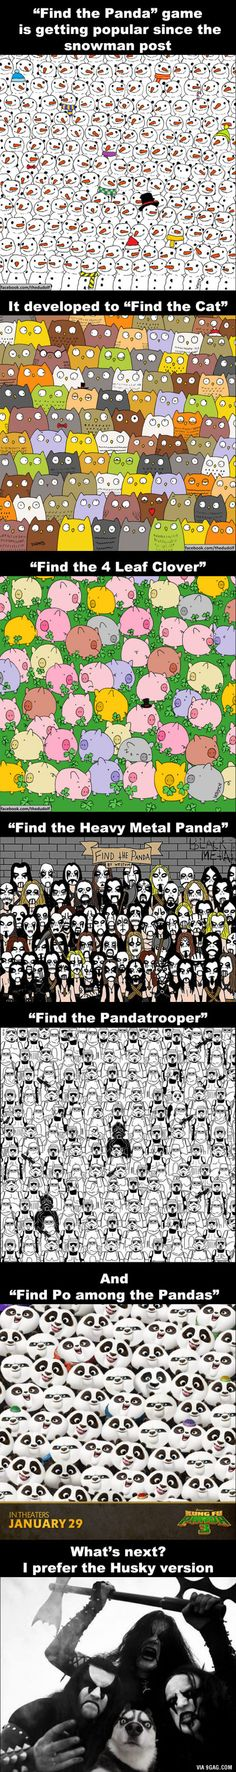 """Find the Panda"" Game is getting more intense. Can you find the panda in these pictures?"